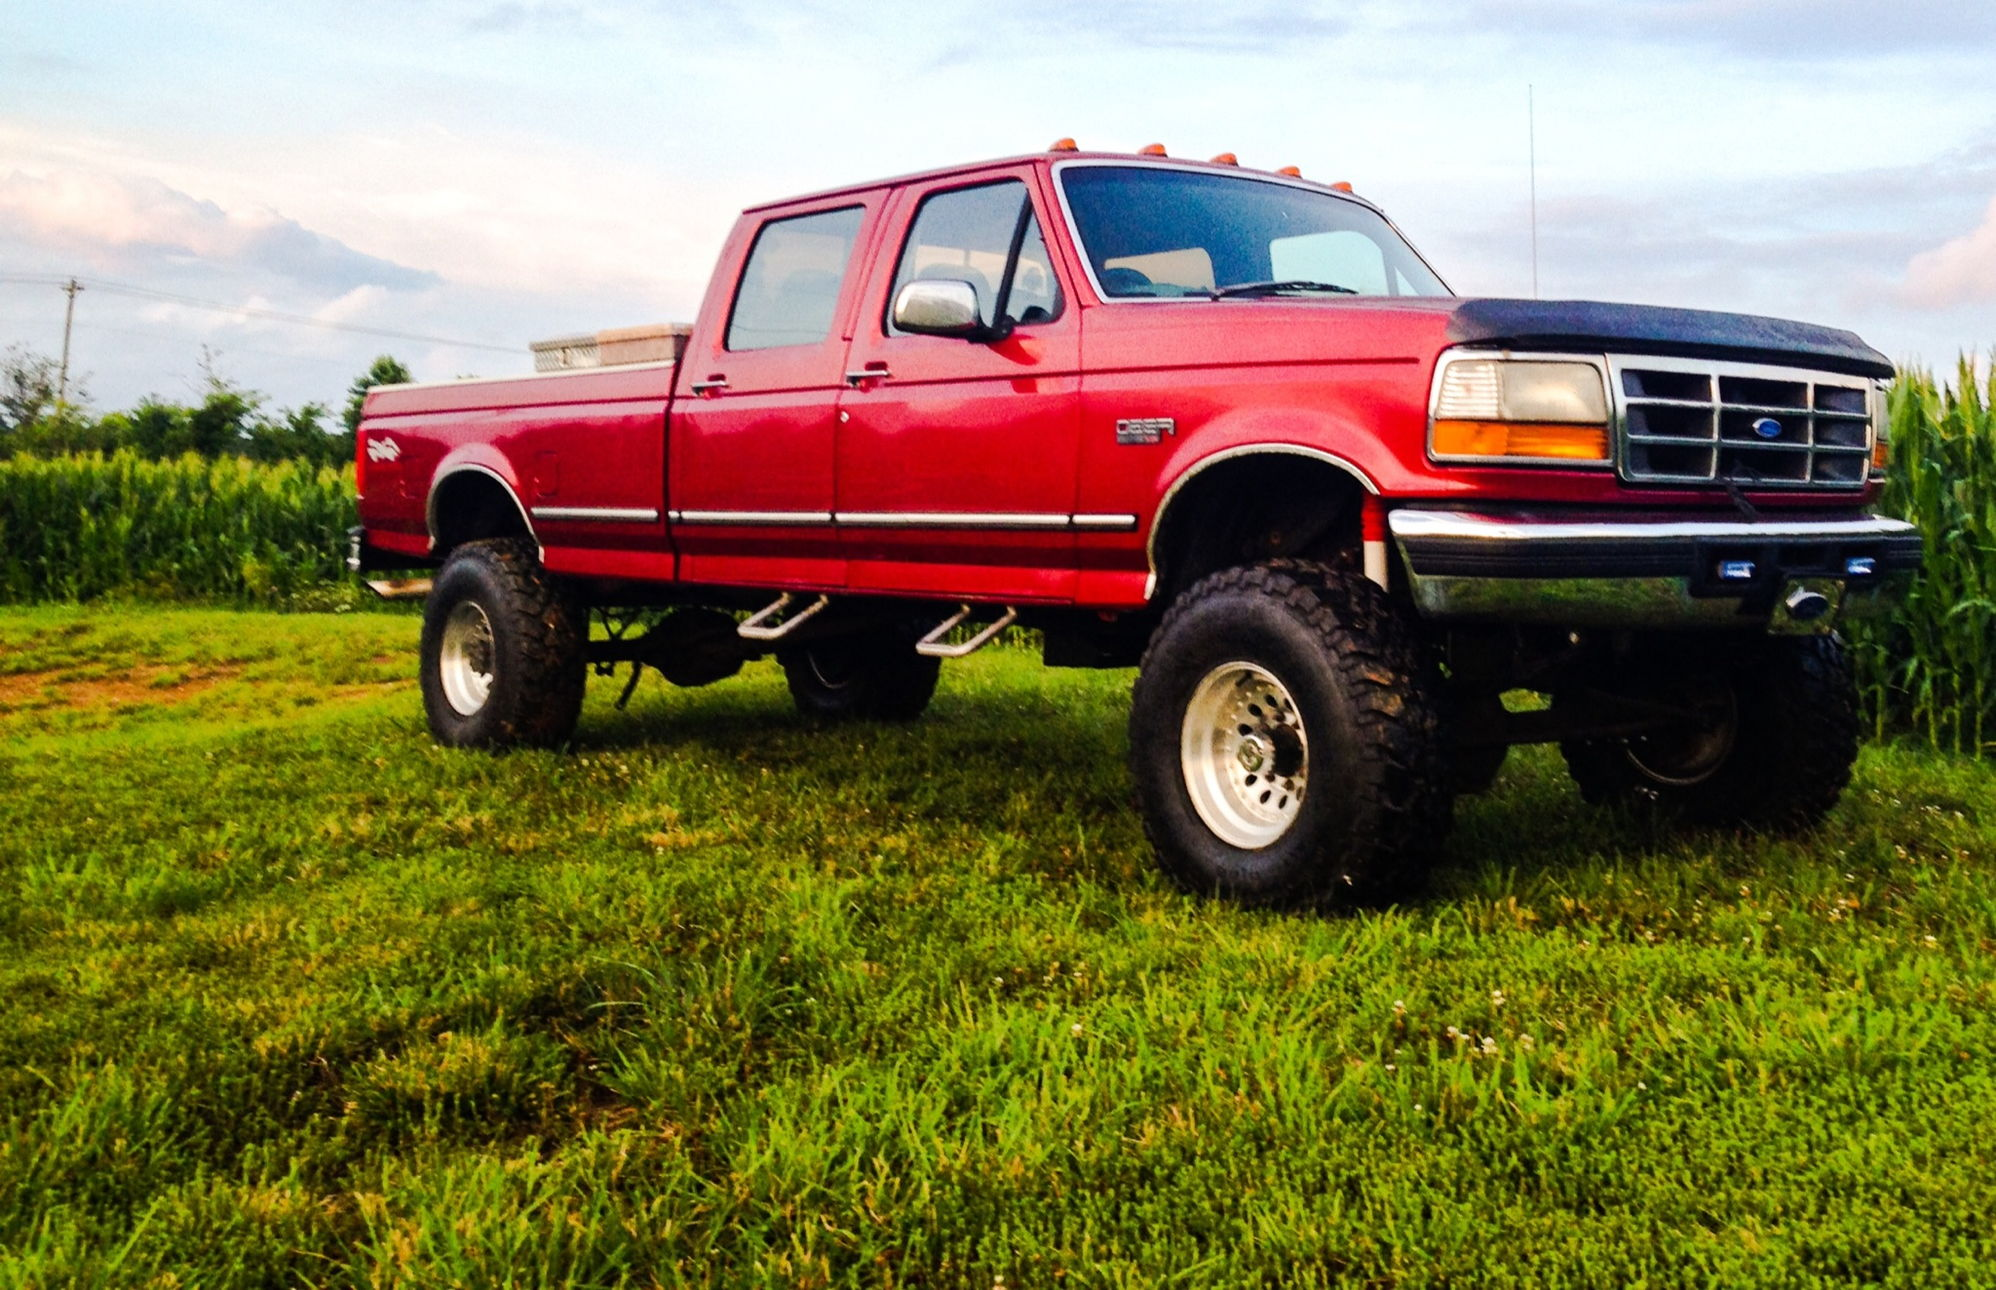 CREWCAB ONLY - Page 16 - Ford Truck Enthusiasts Forums